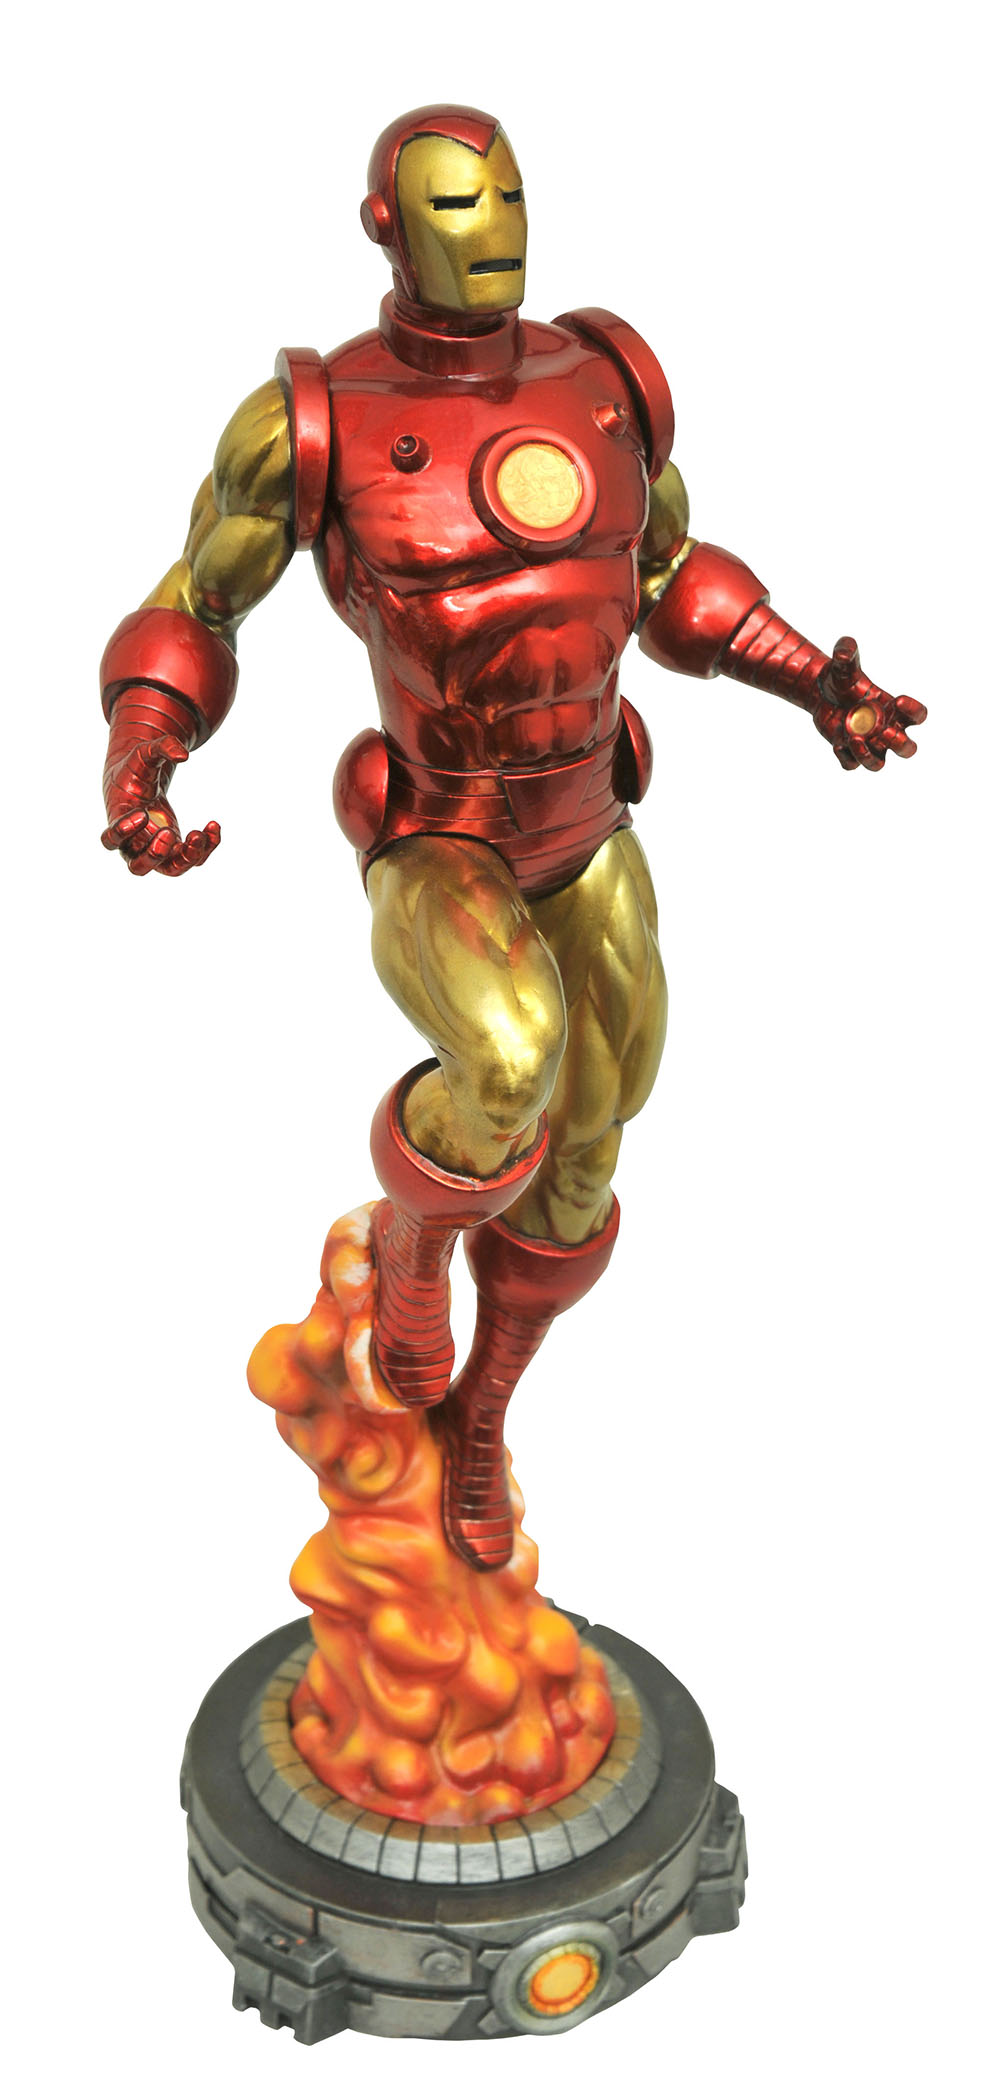 MARVEL GALLERY CLASSIC IRON MAN PVC FIG